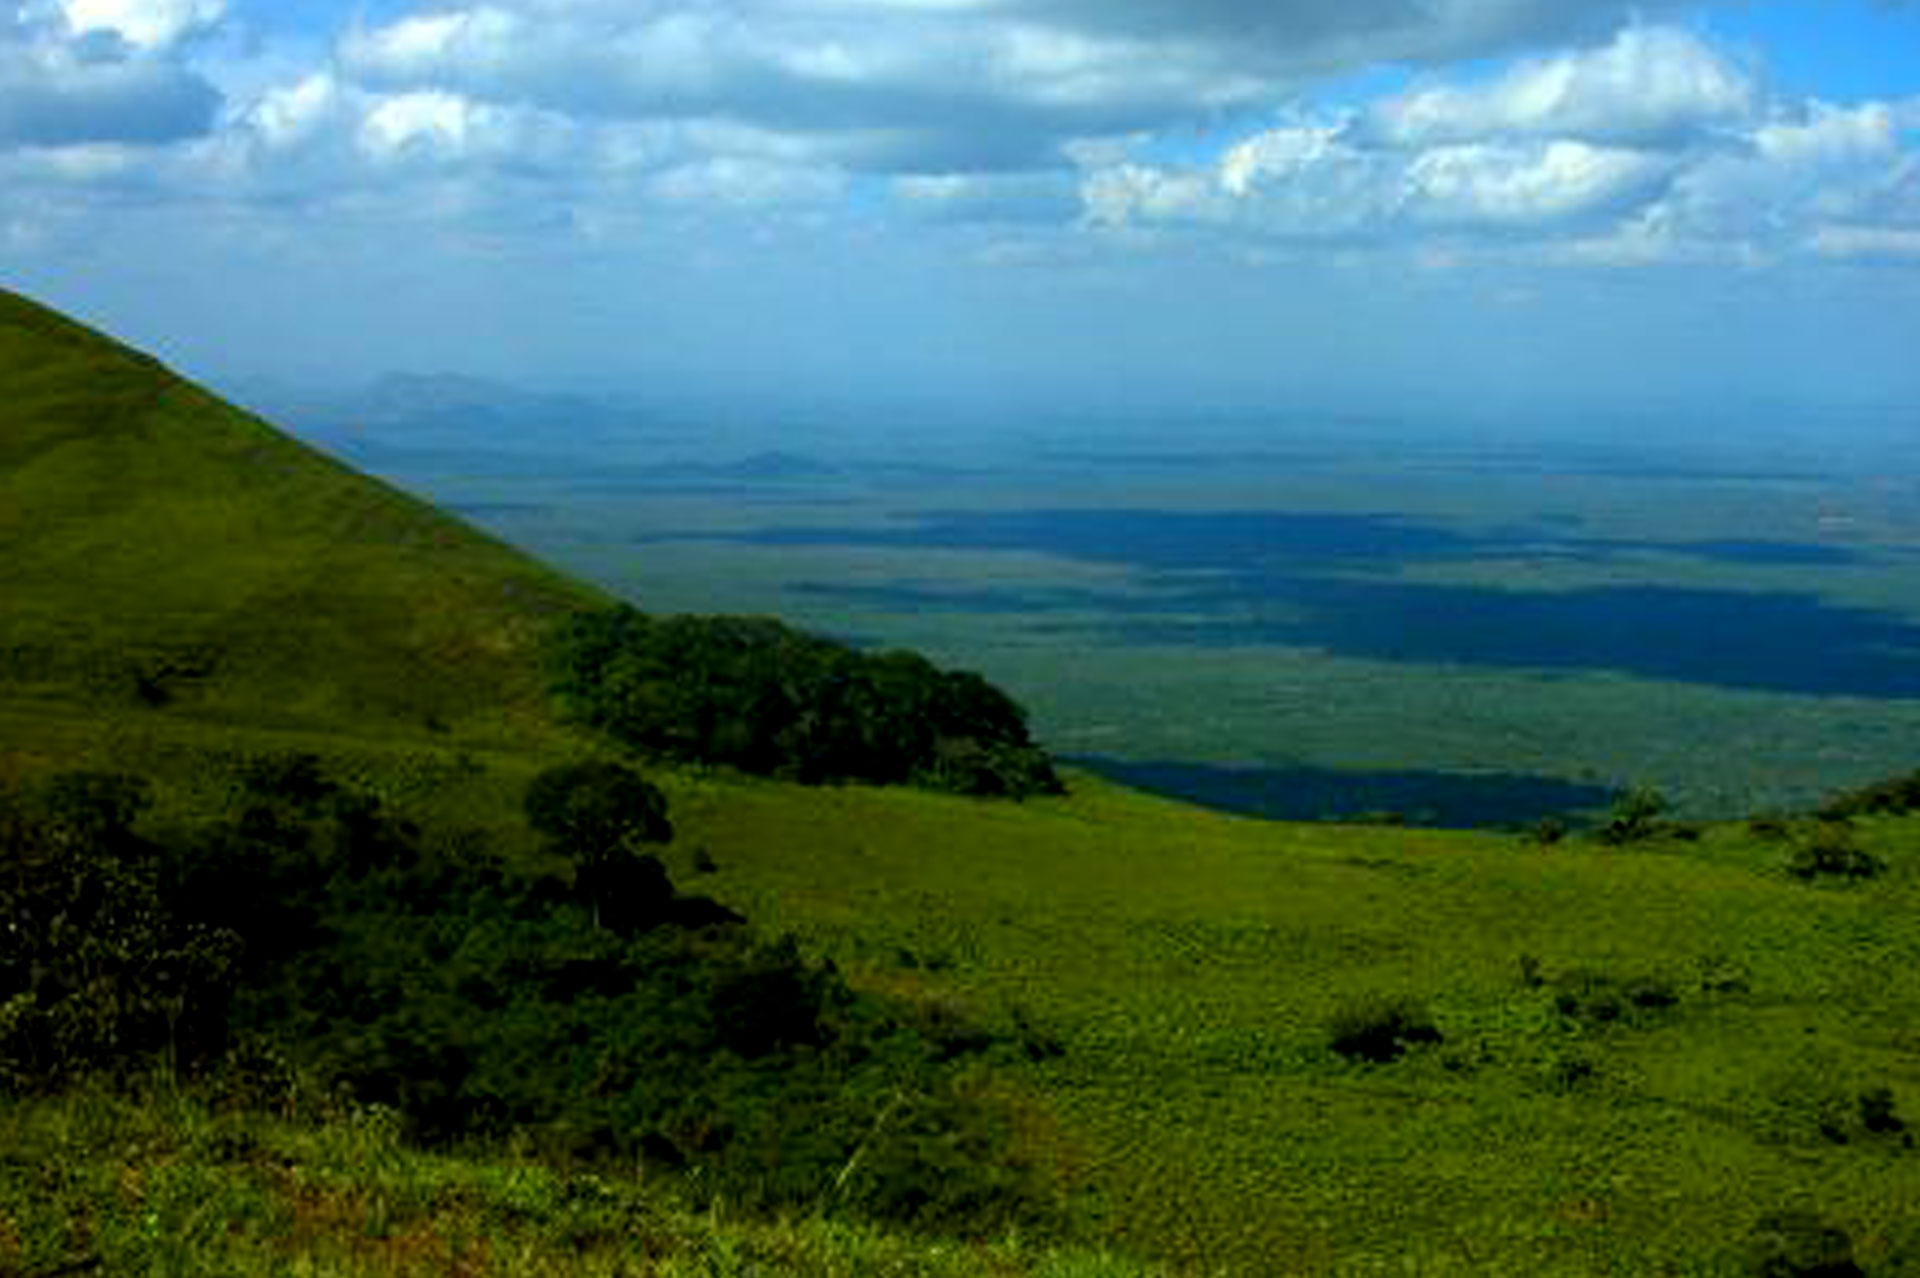 Diani_travel_center_National_Parks_in_Kenya_Chyulu_Hills_National_park_image_2